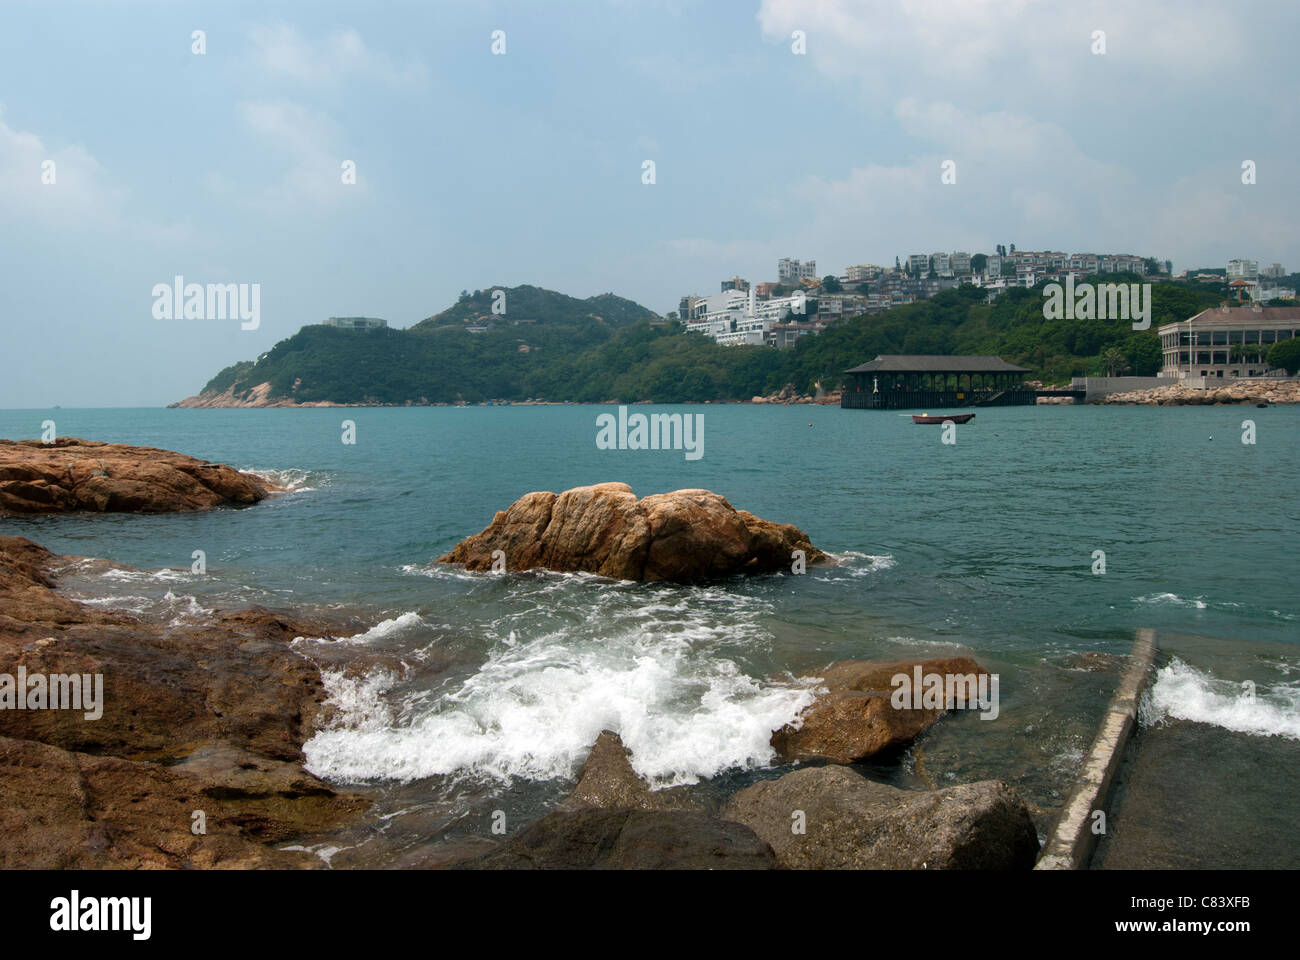 Stanley, Hong Kong, with Murray House and Blake Pier - Stock Image